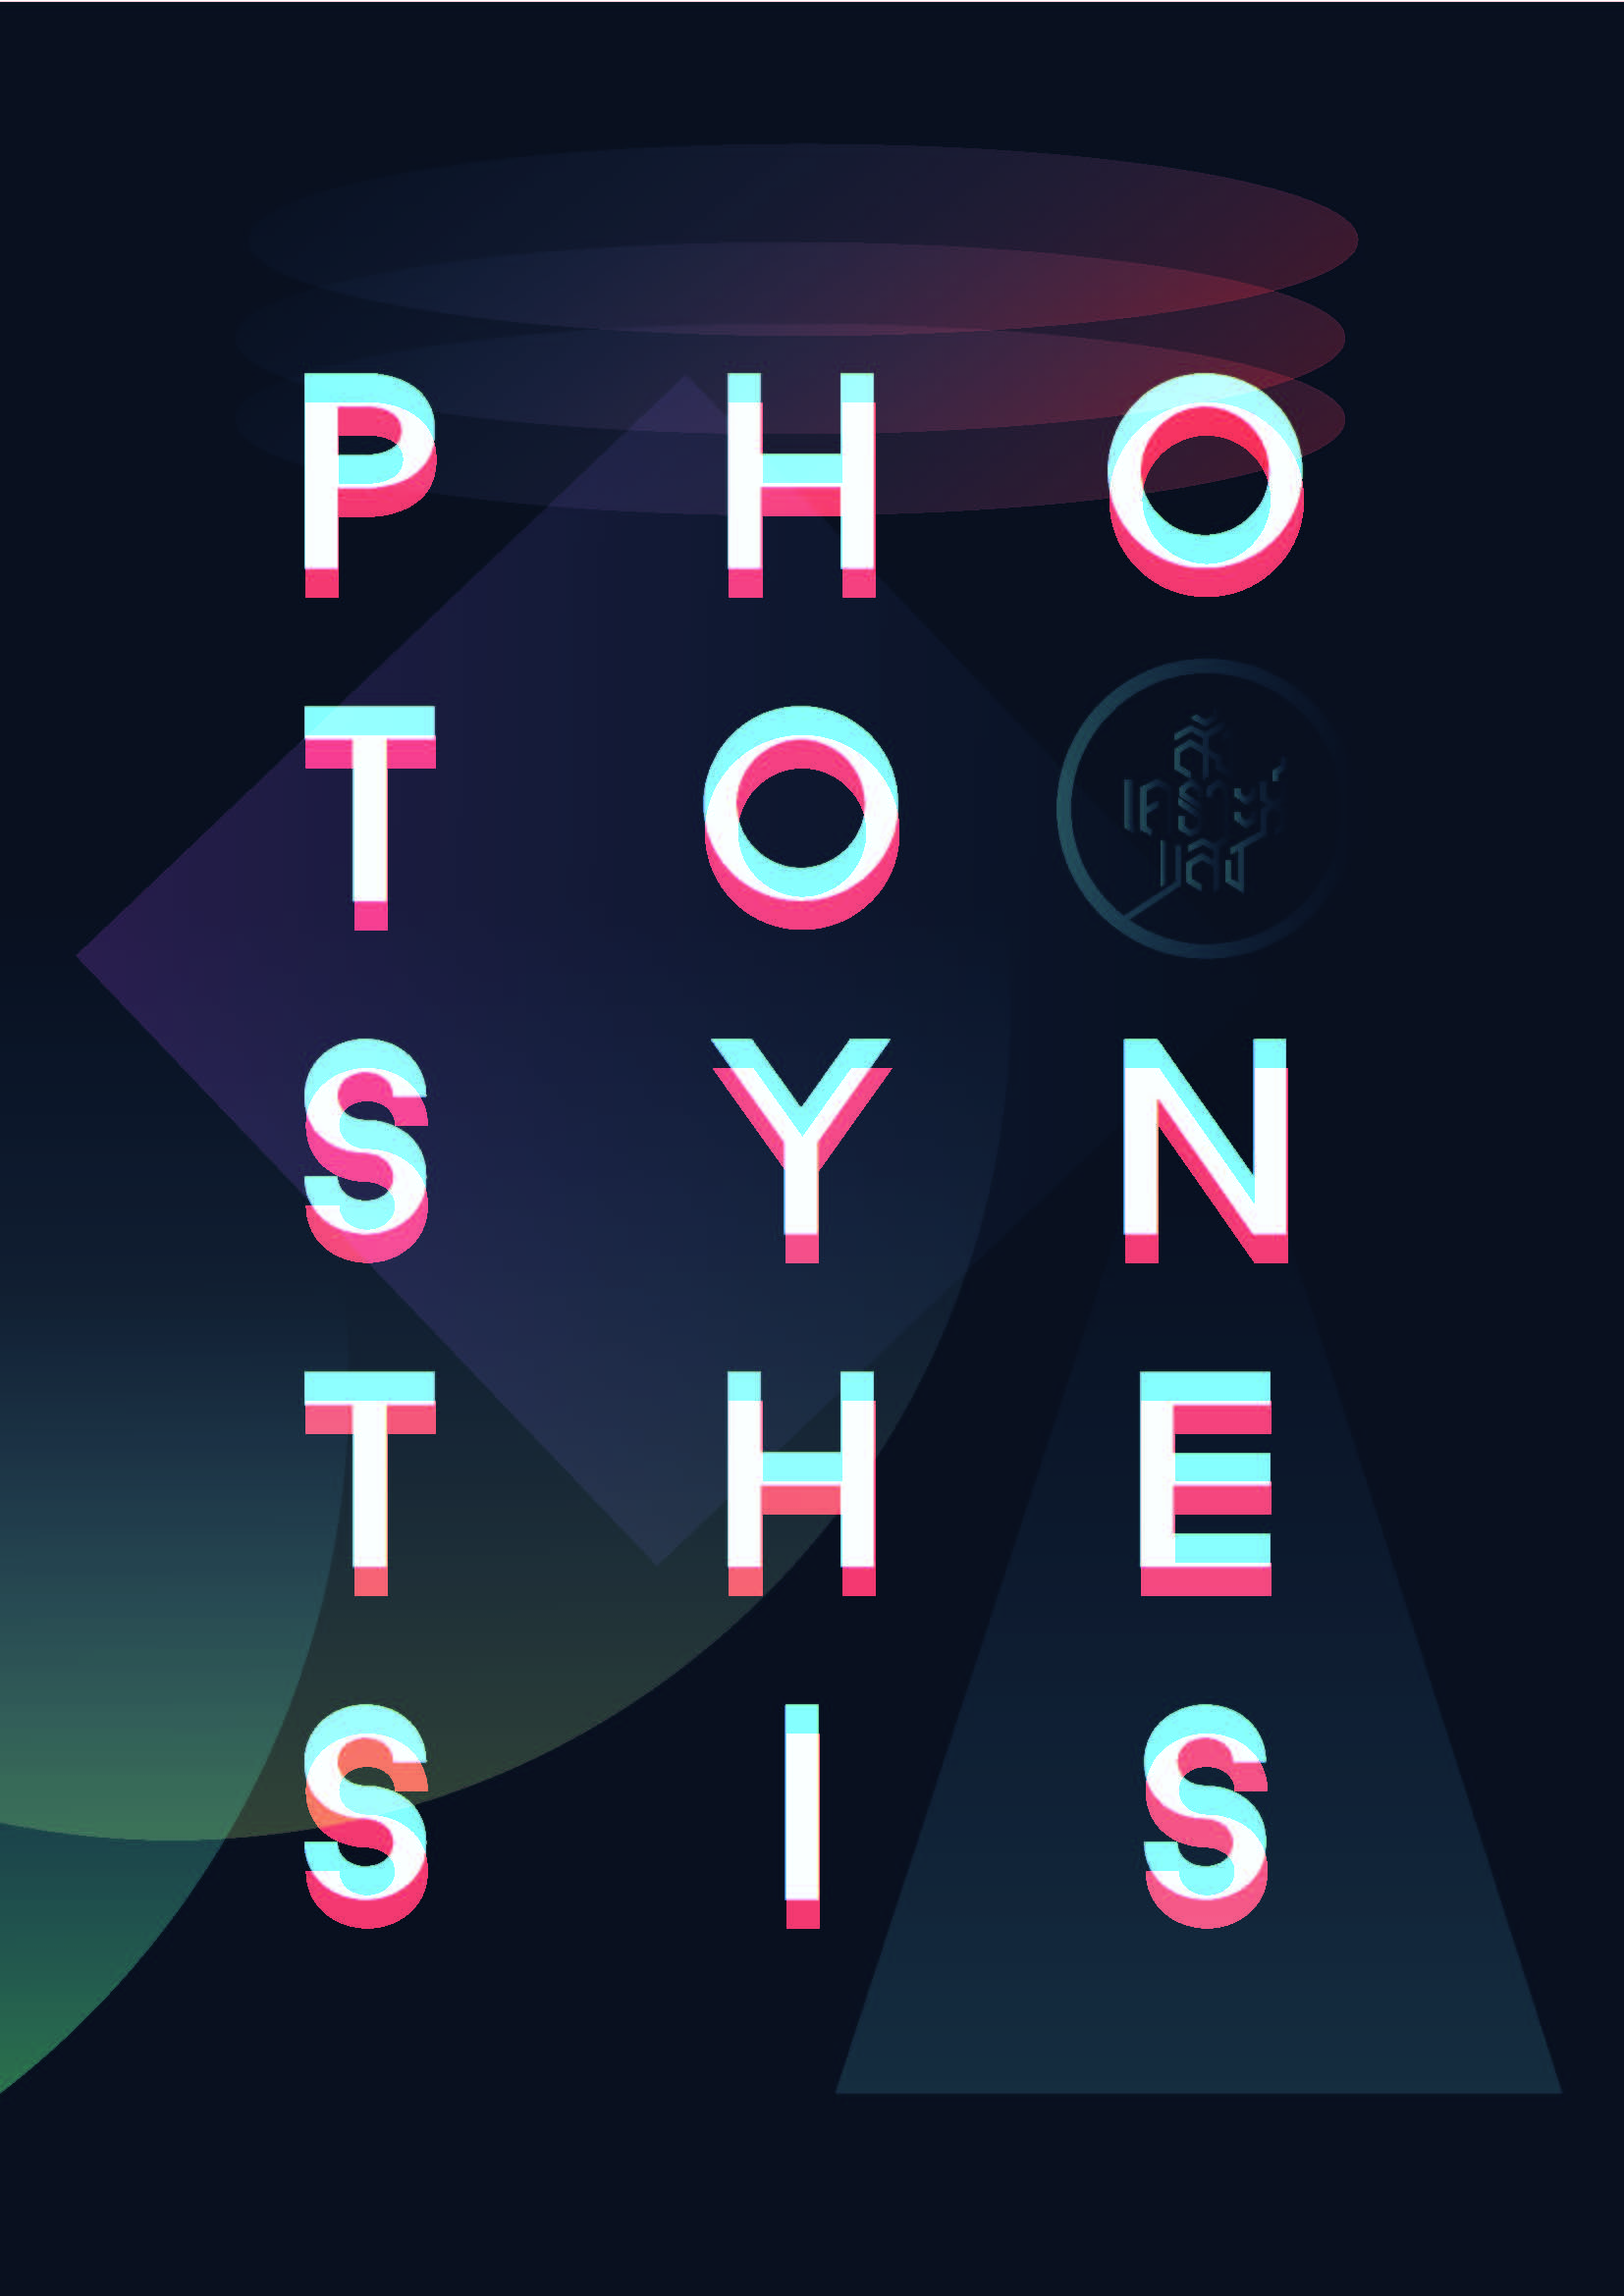 Photosynthesis-The46th_Art_Thesis_Exhibition_Decorative_Arts_Page_001